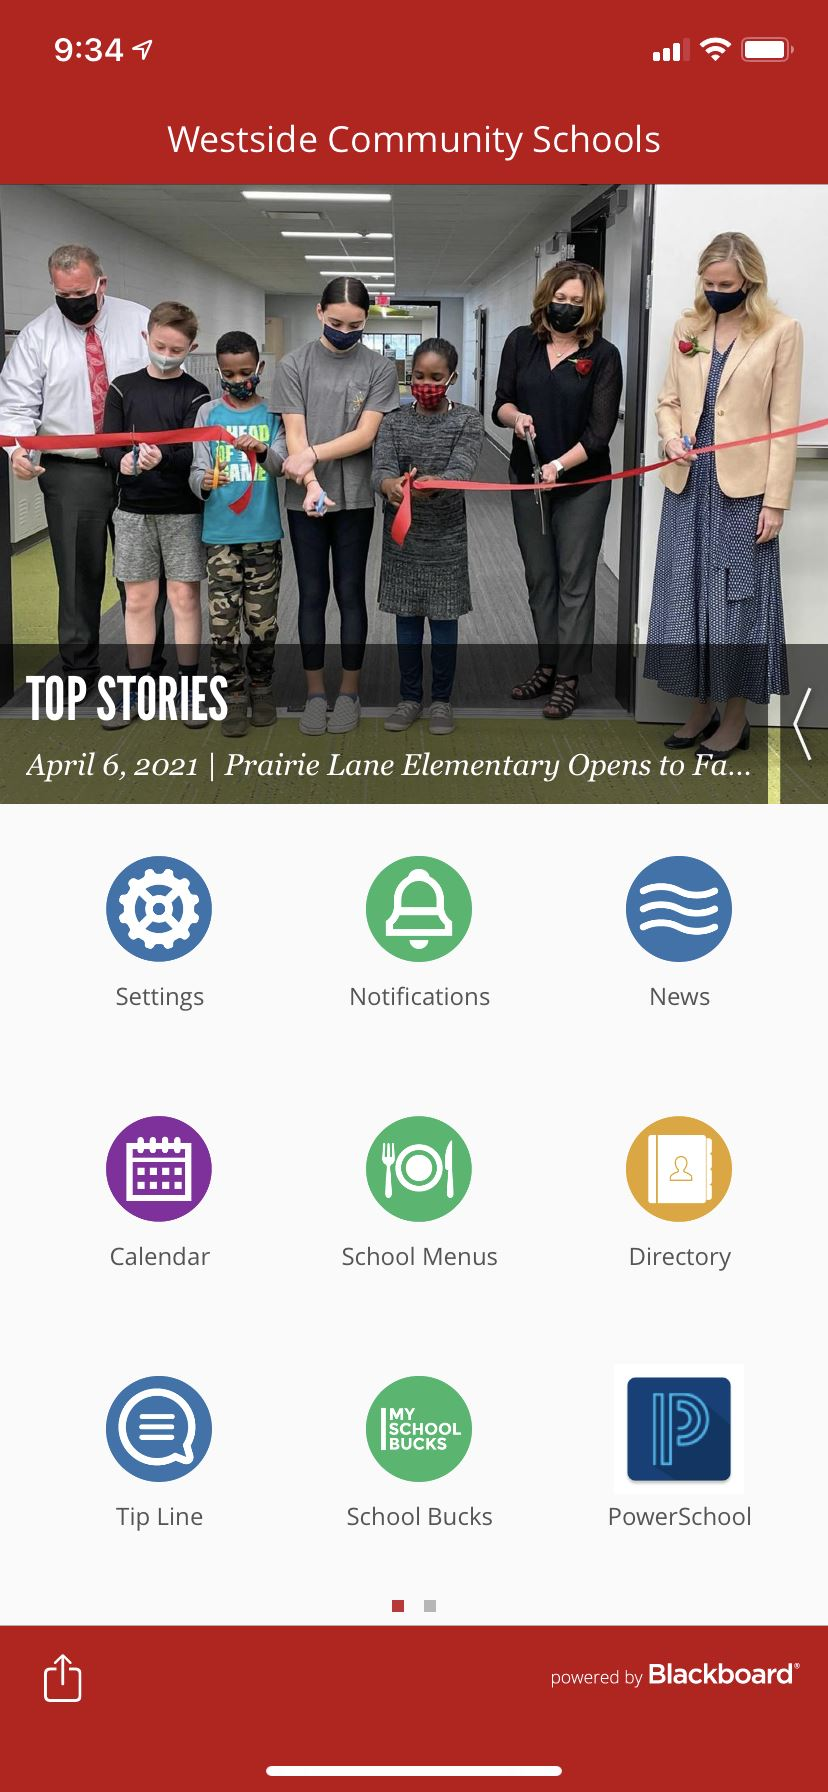 April 16, 2021 | District Debuts New APP!